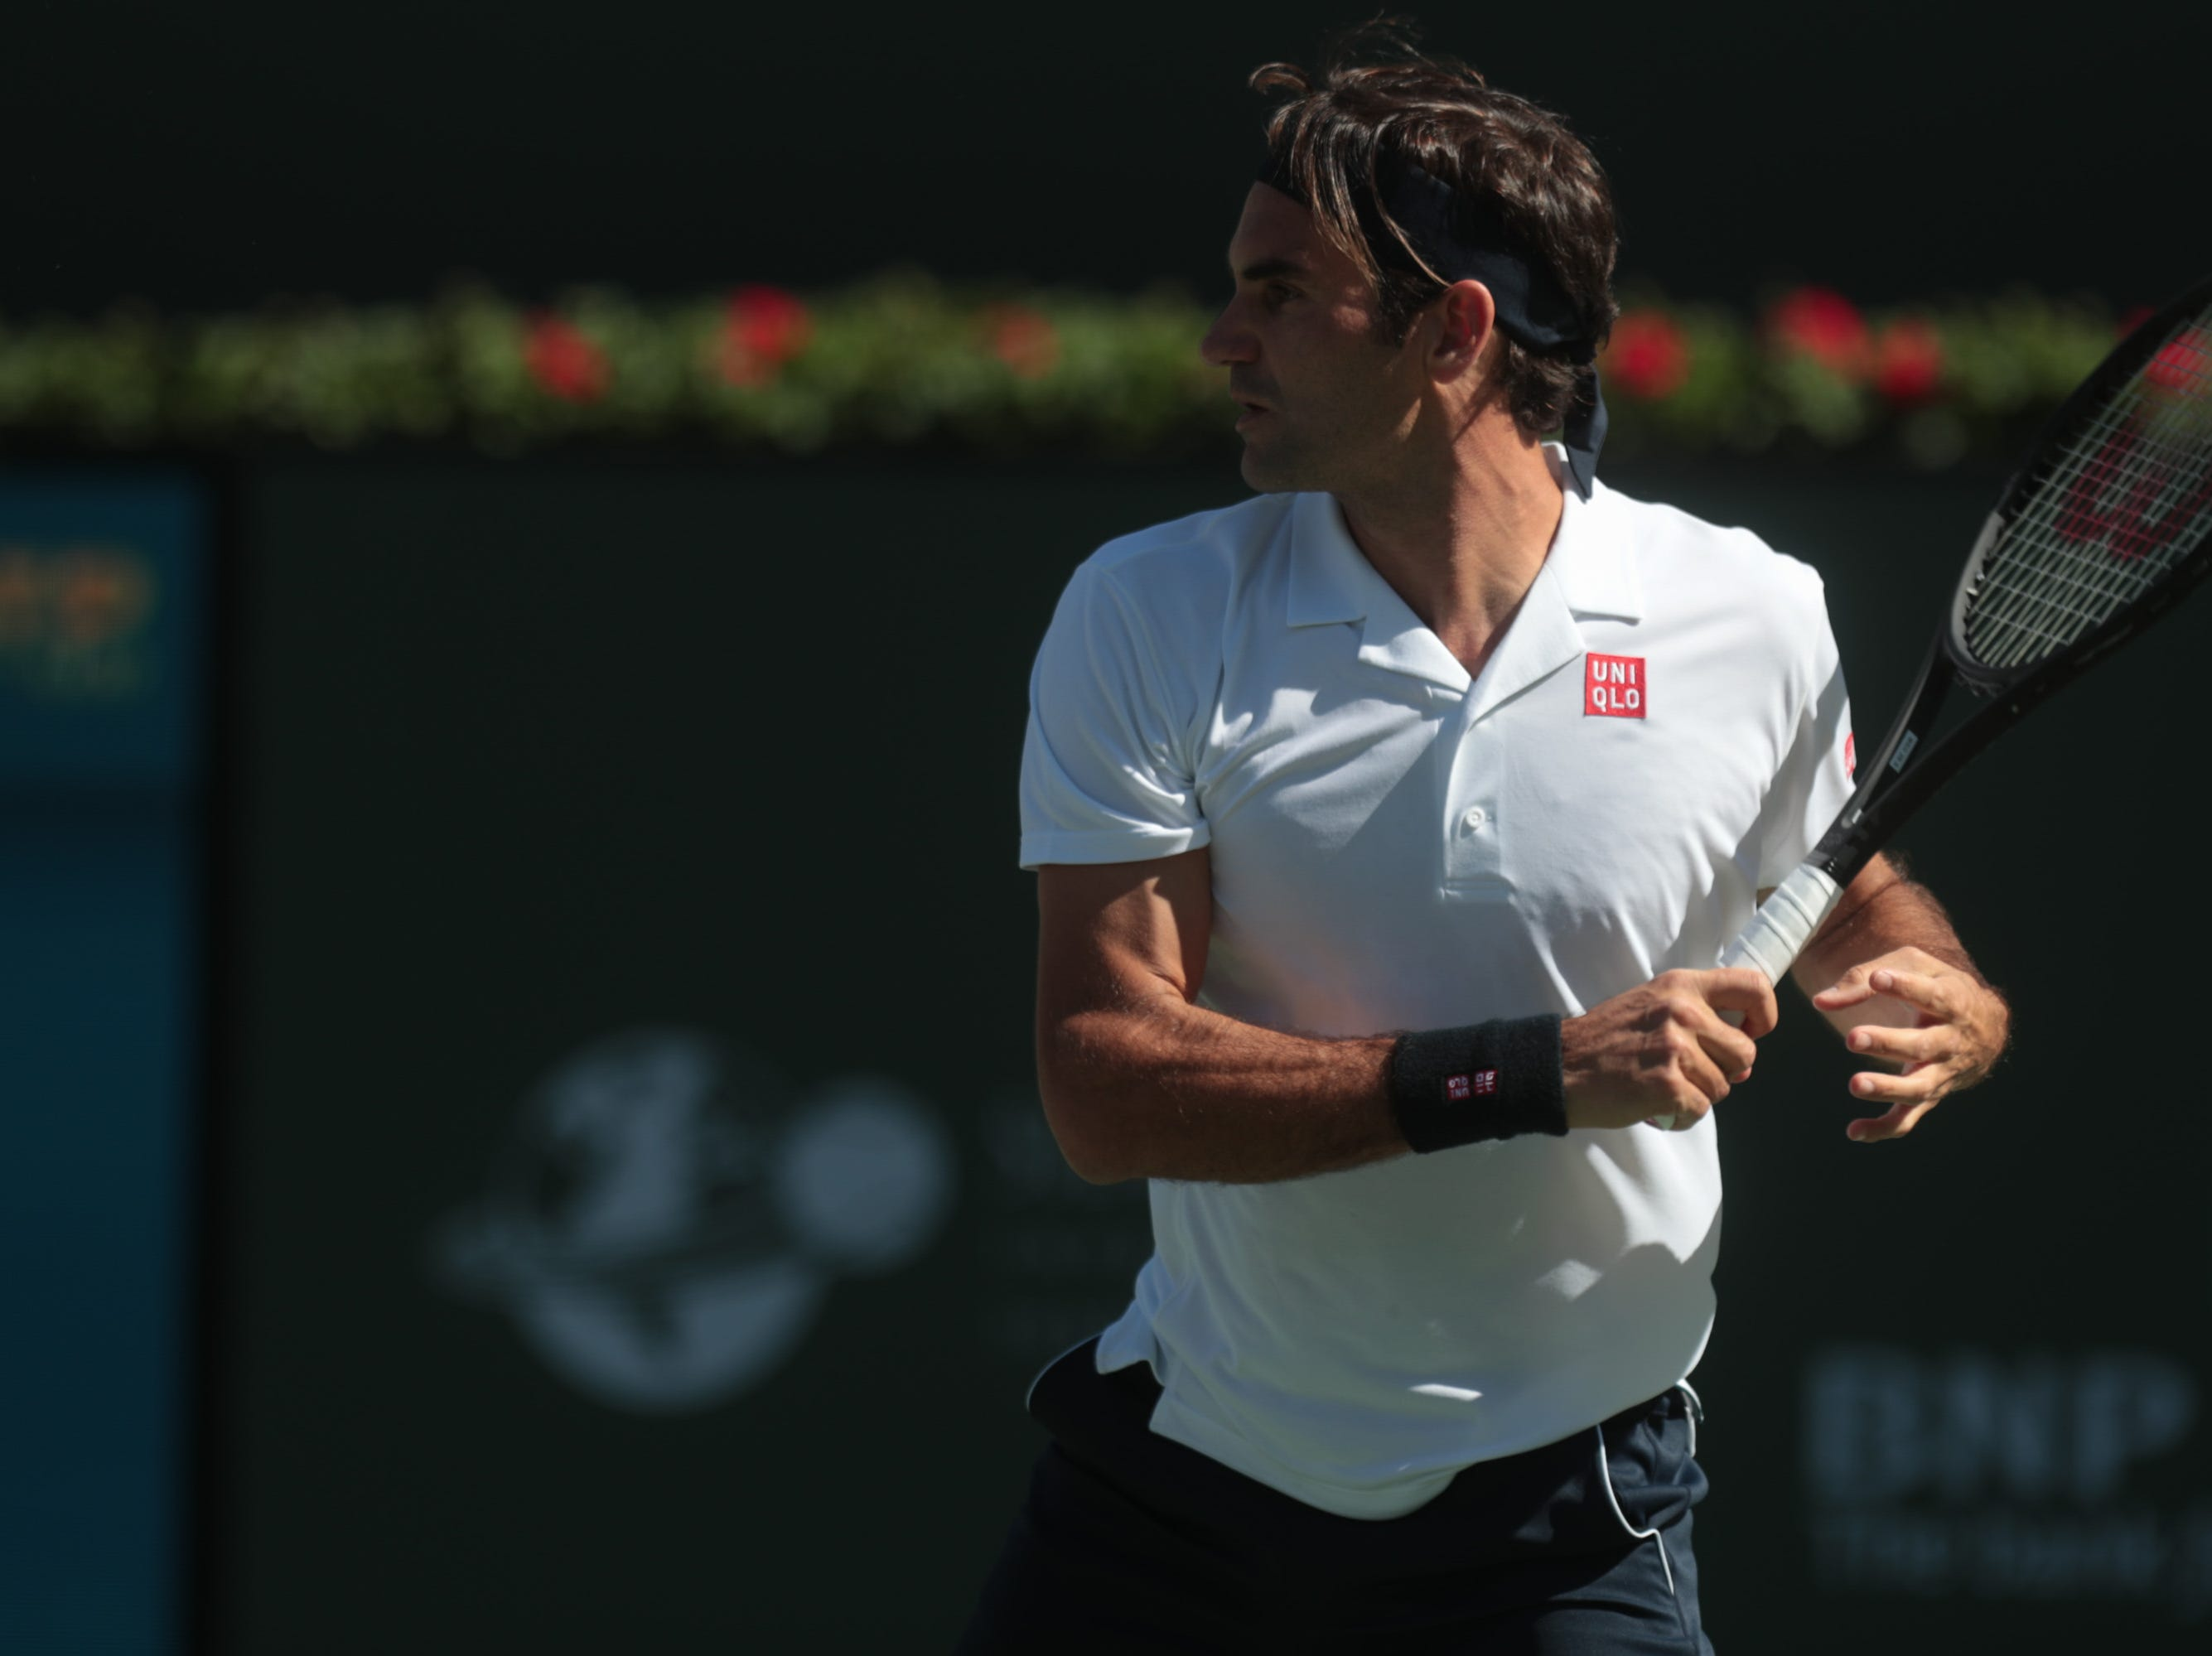 Roger Federer looks towards his shot to Kyle Edmund at the BNP Paribas Open in Indian Wells, Calif., March 13, 2019.